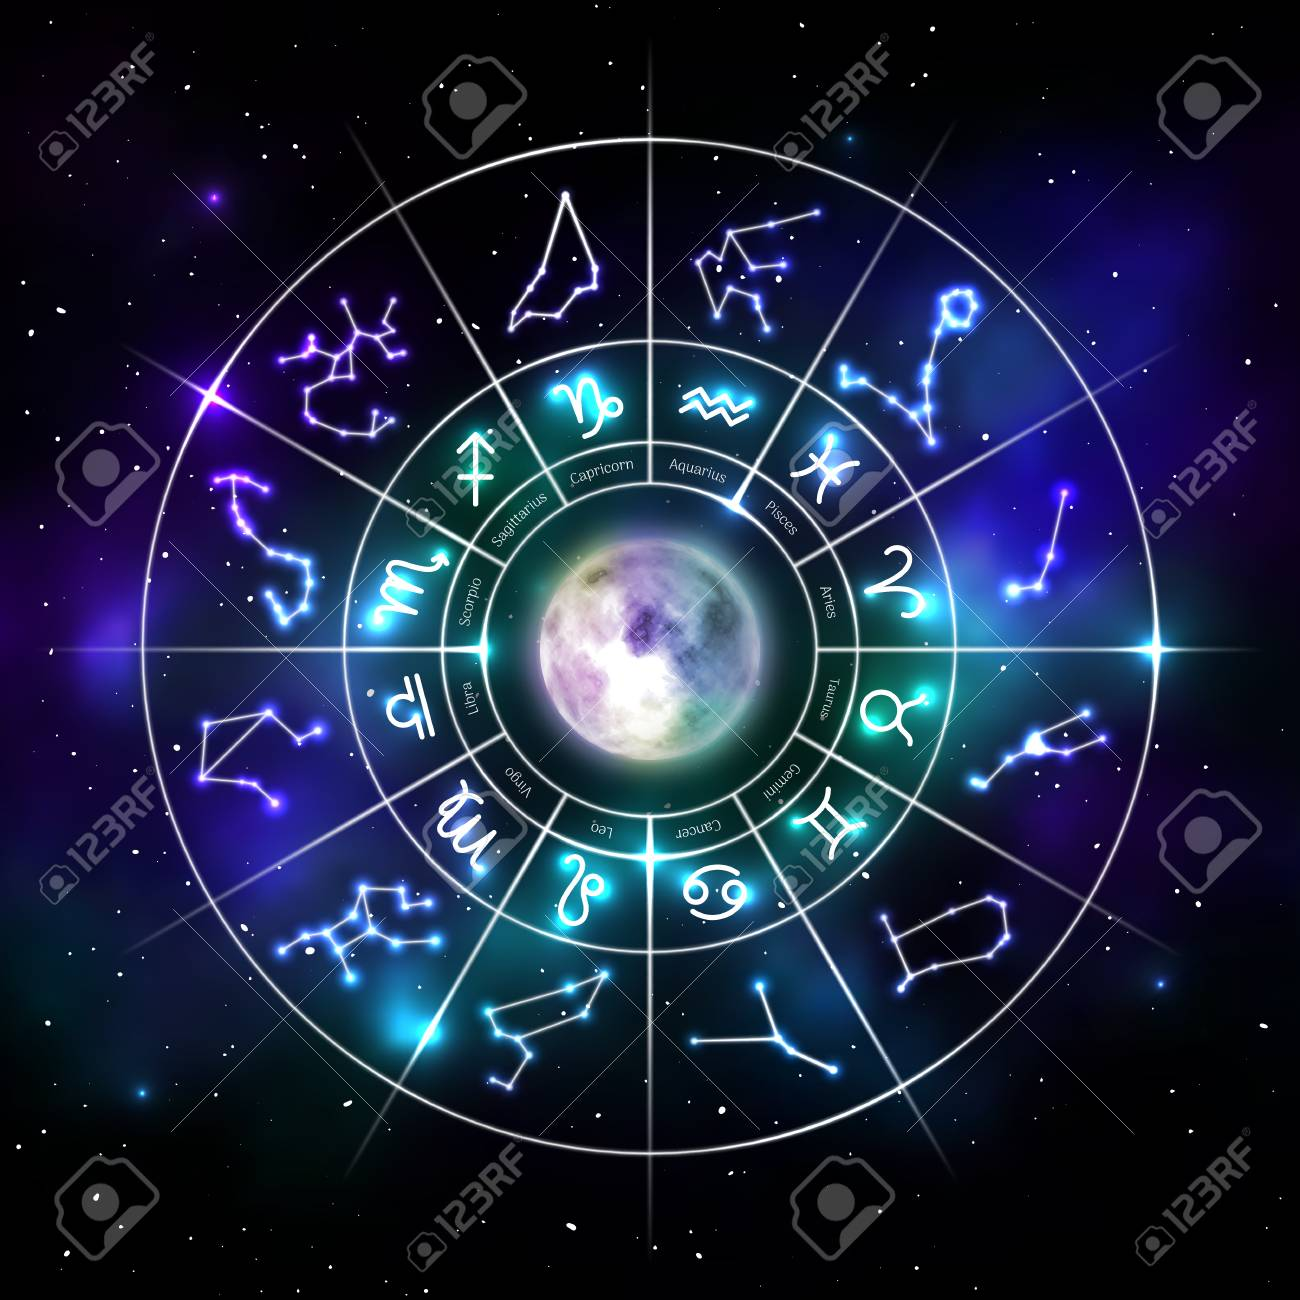 Zodiac circle with astrology symbols in neon style - 112697660